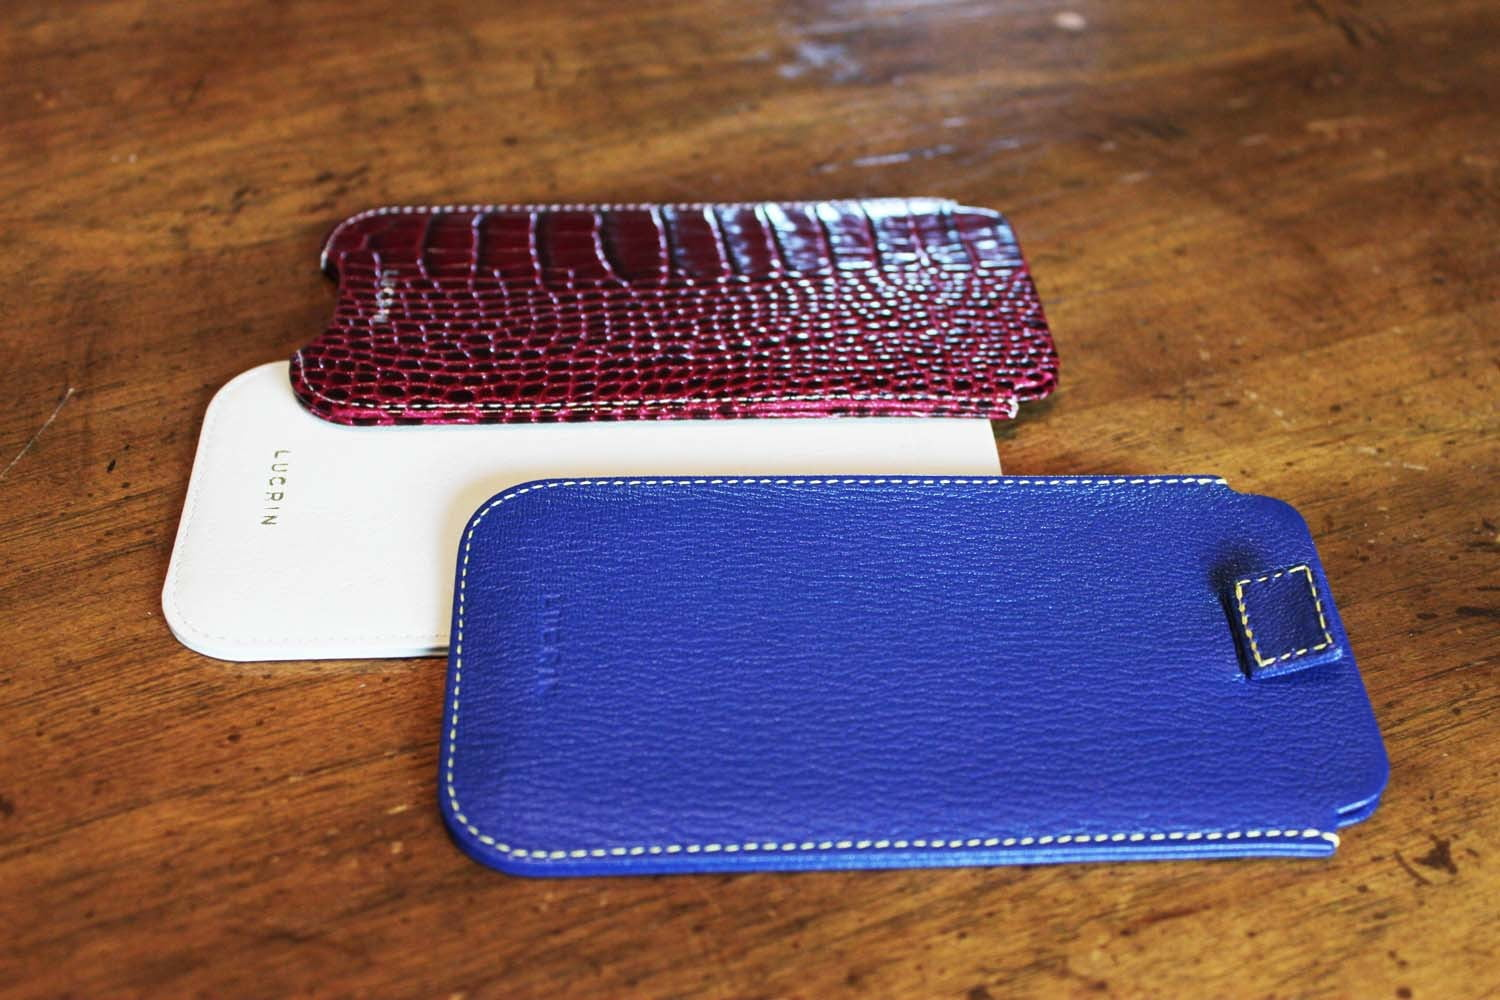 finest selection 1dd6d f8a48 Lucrin Leather Pouch for iPhone 6 and 6s | Digital Trends